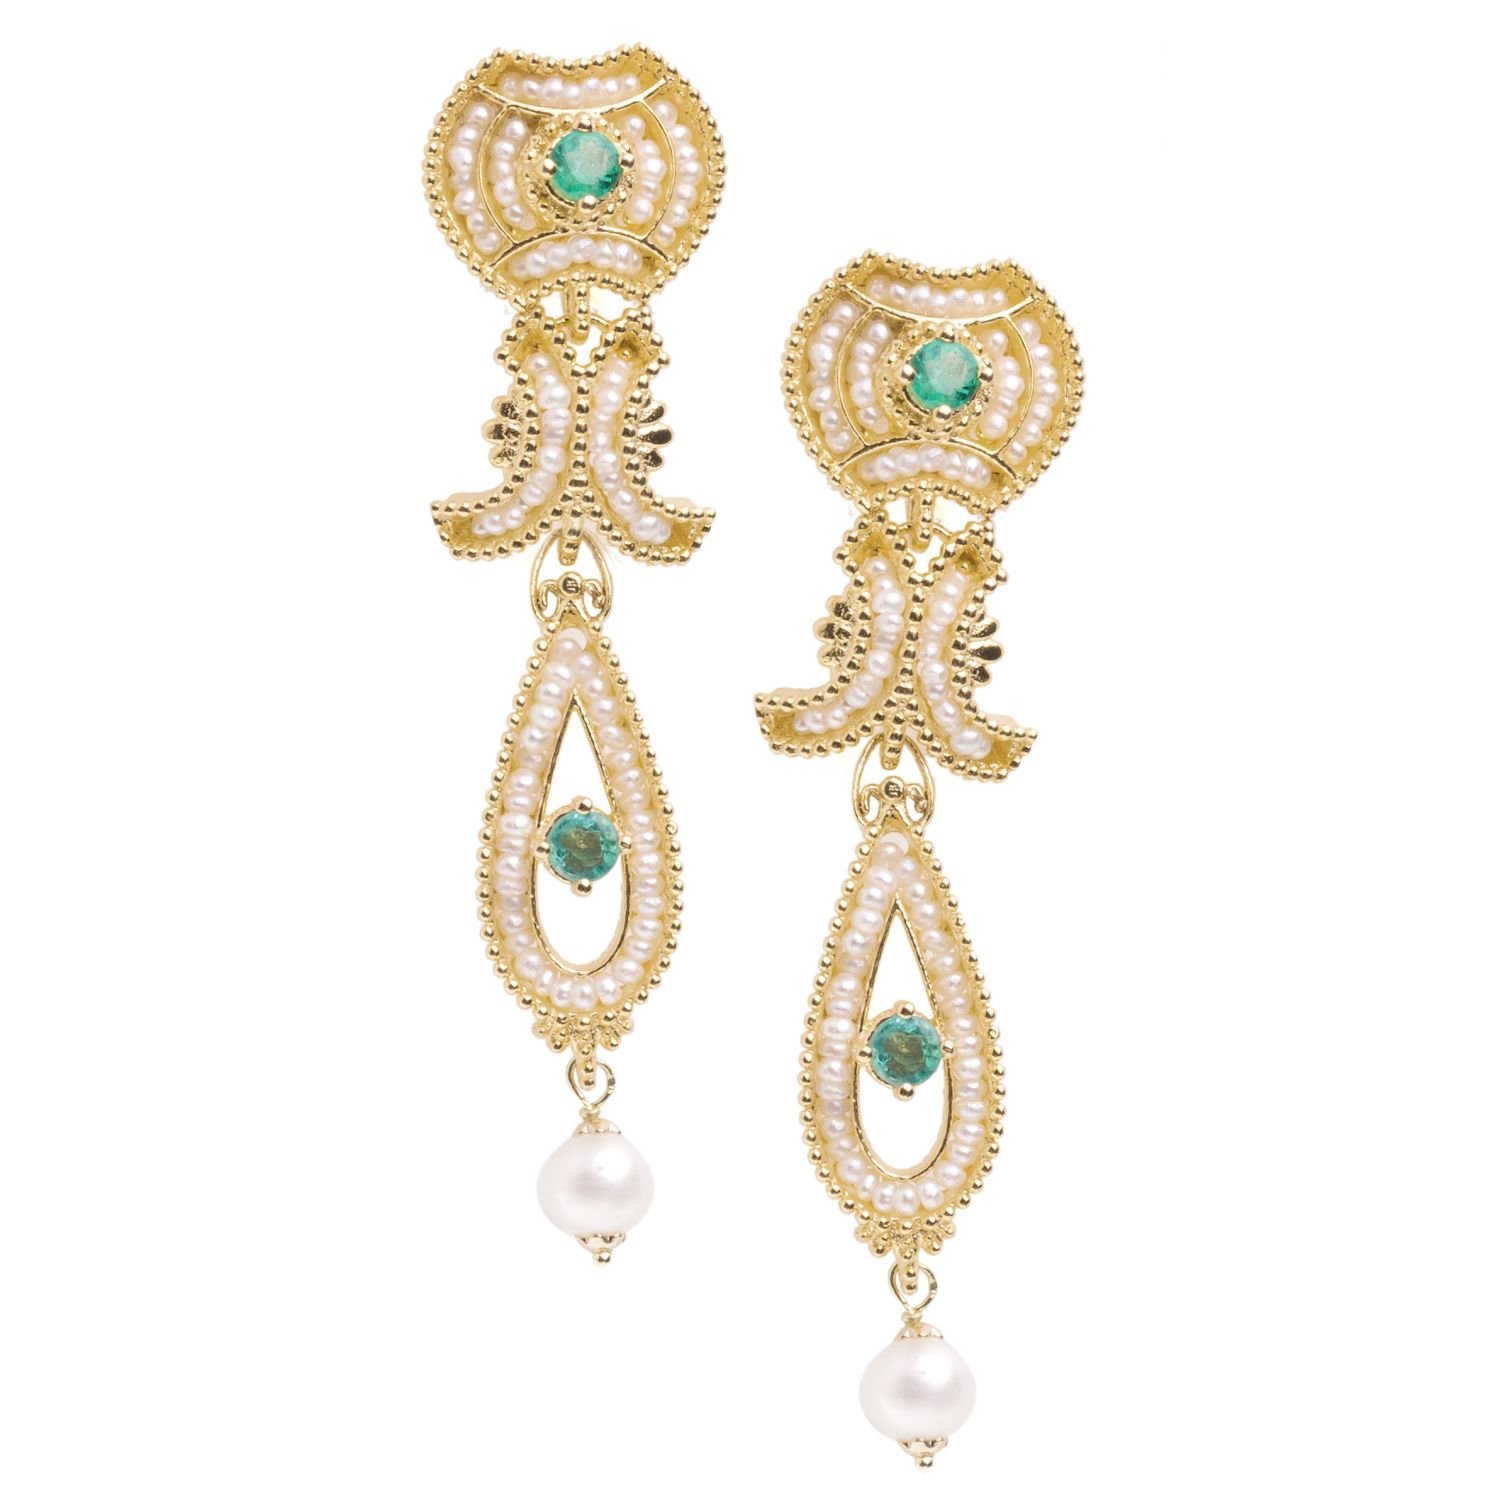 Pendant Earrings with Pearls and precious Stones (14237)